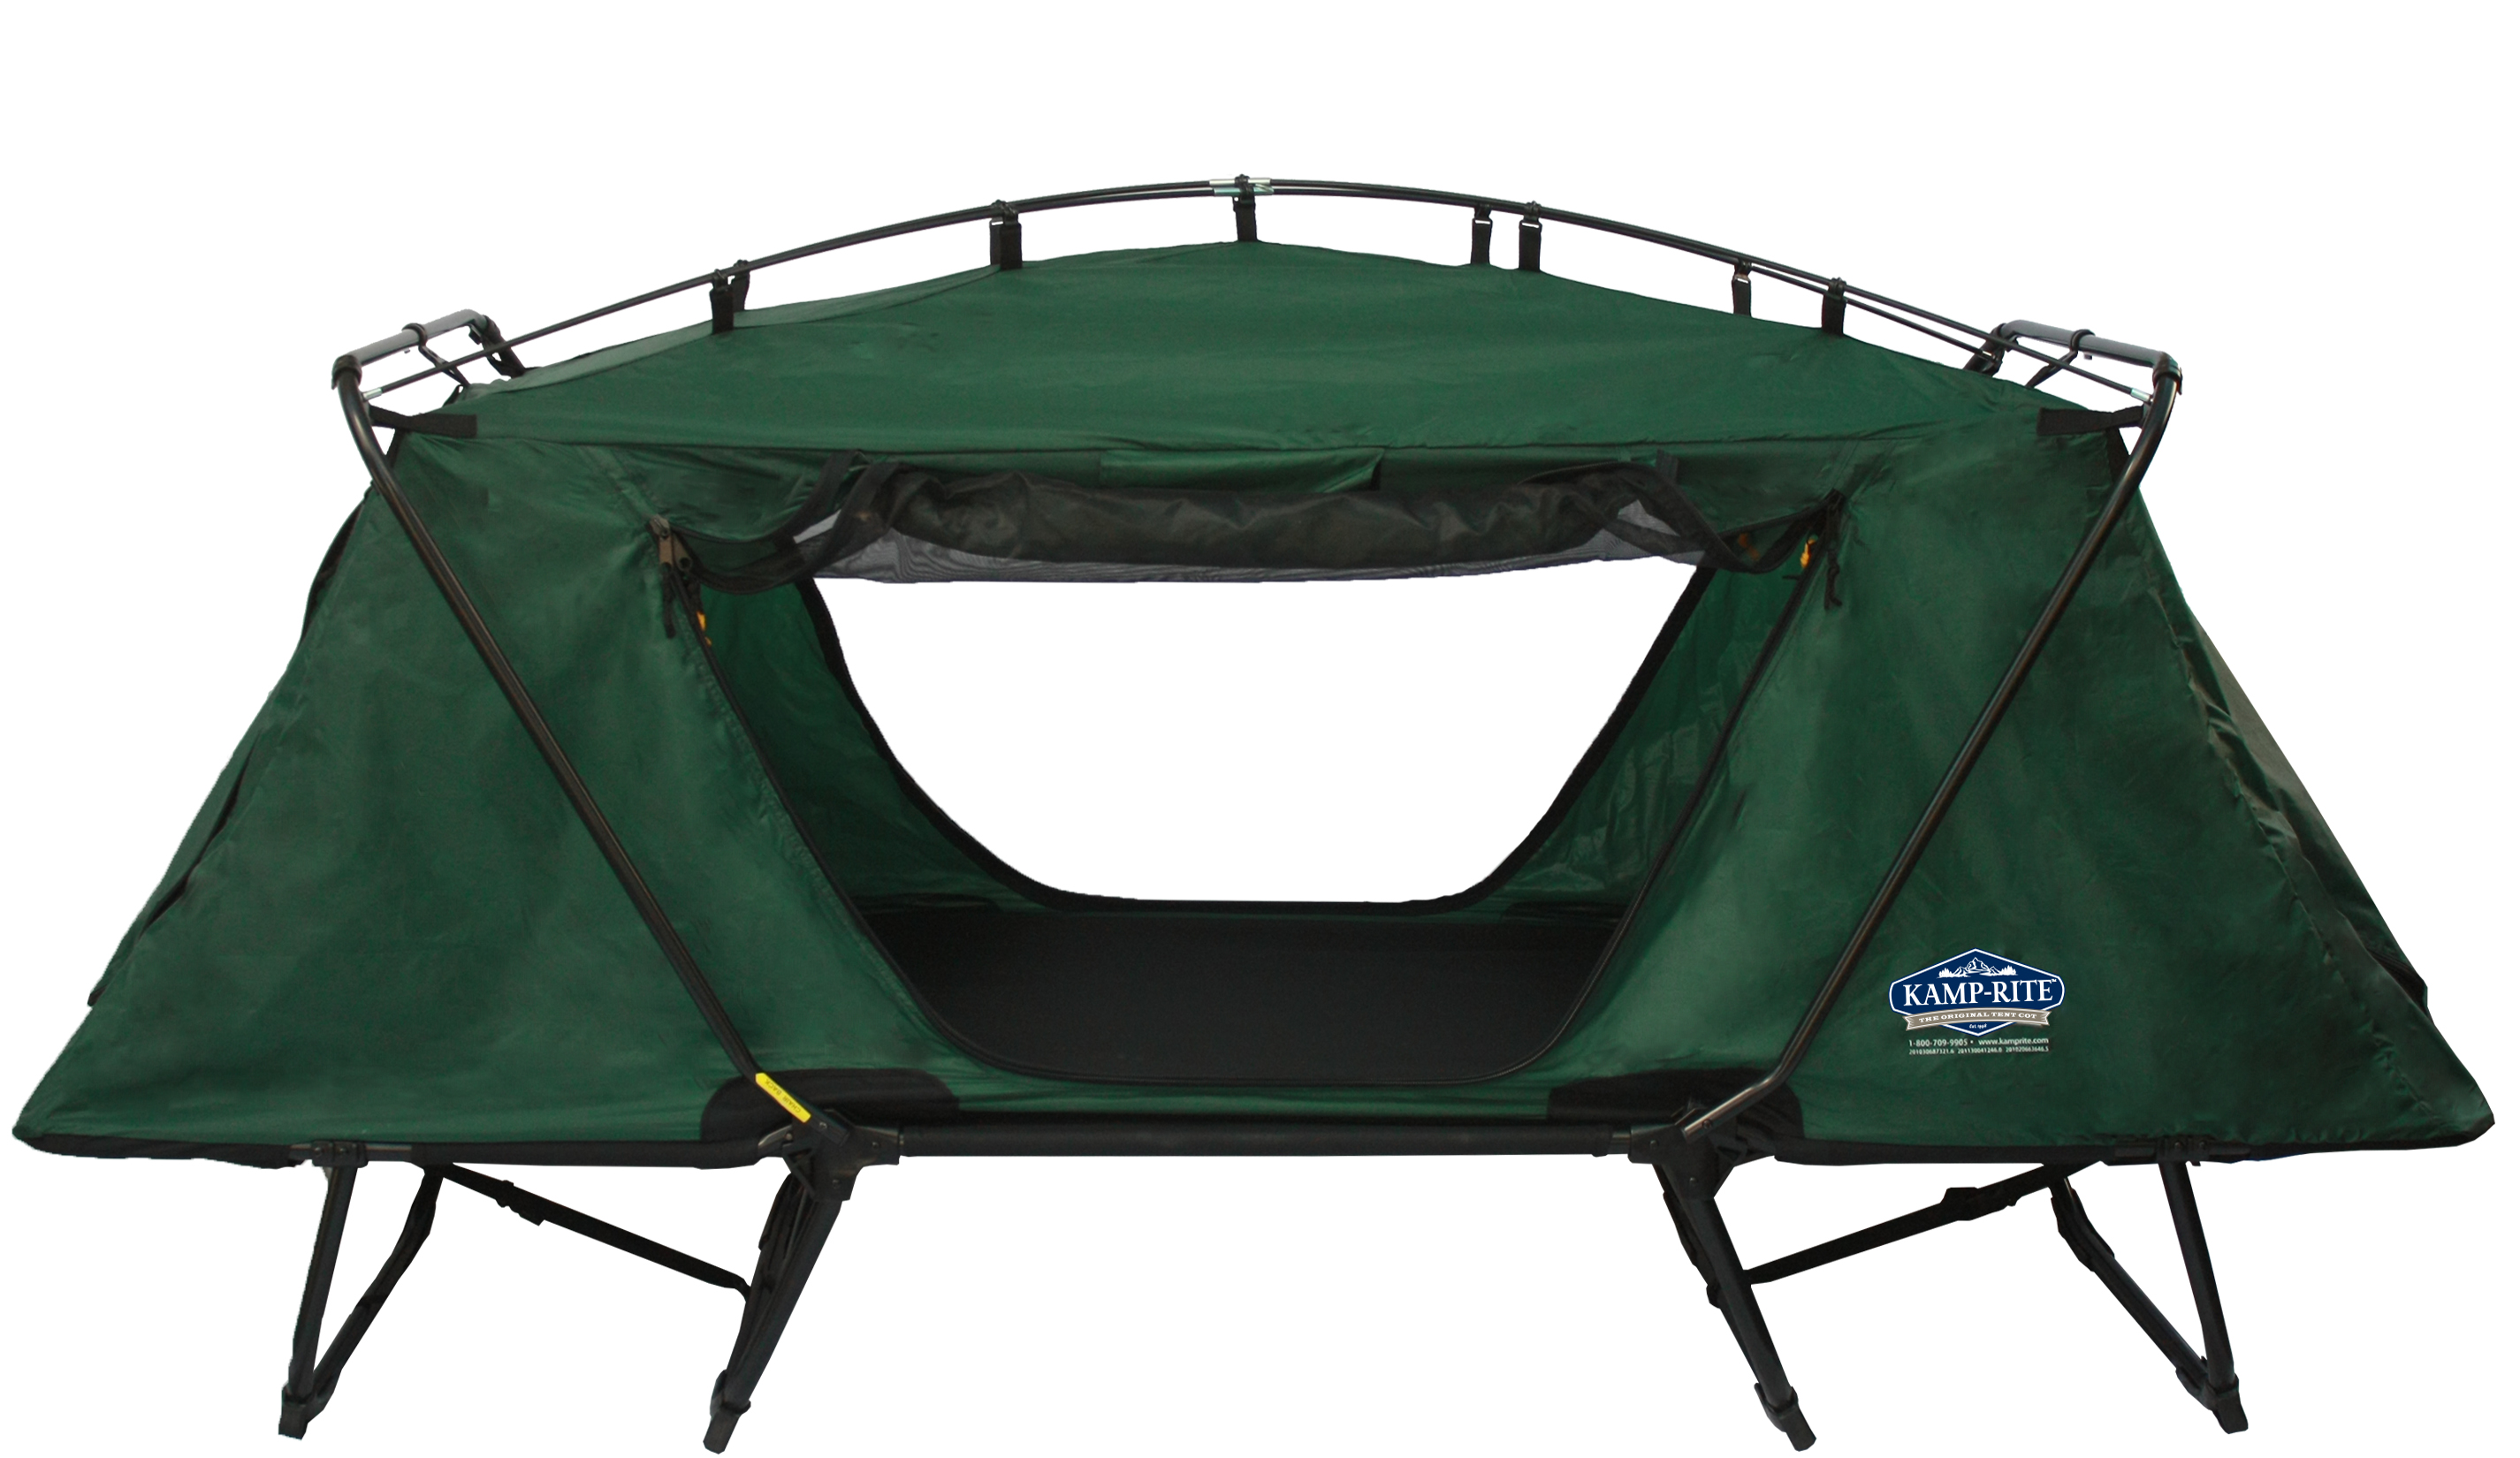 K&-Rite Oversize Tent Cot with Rain Fly  sc 1 st  C&ing Gear Outlet & Rite Oversize Tent Cot with Rain Fly